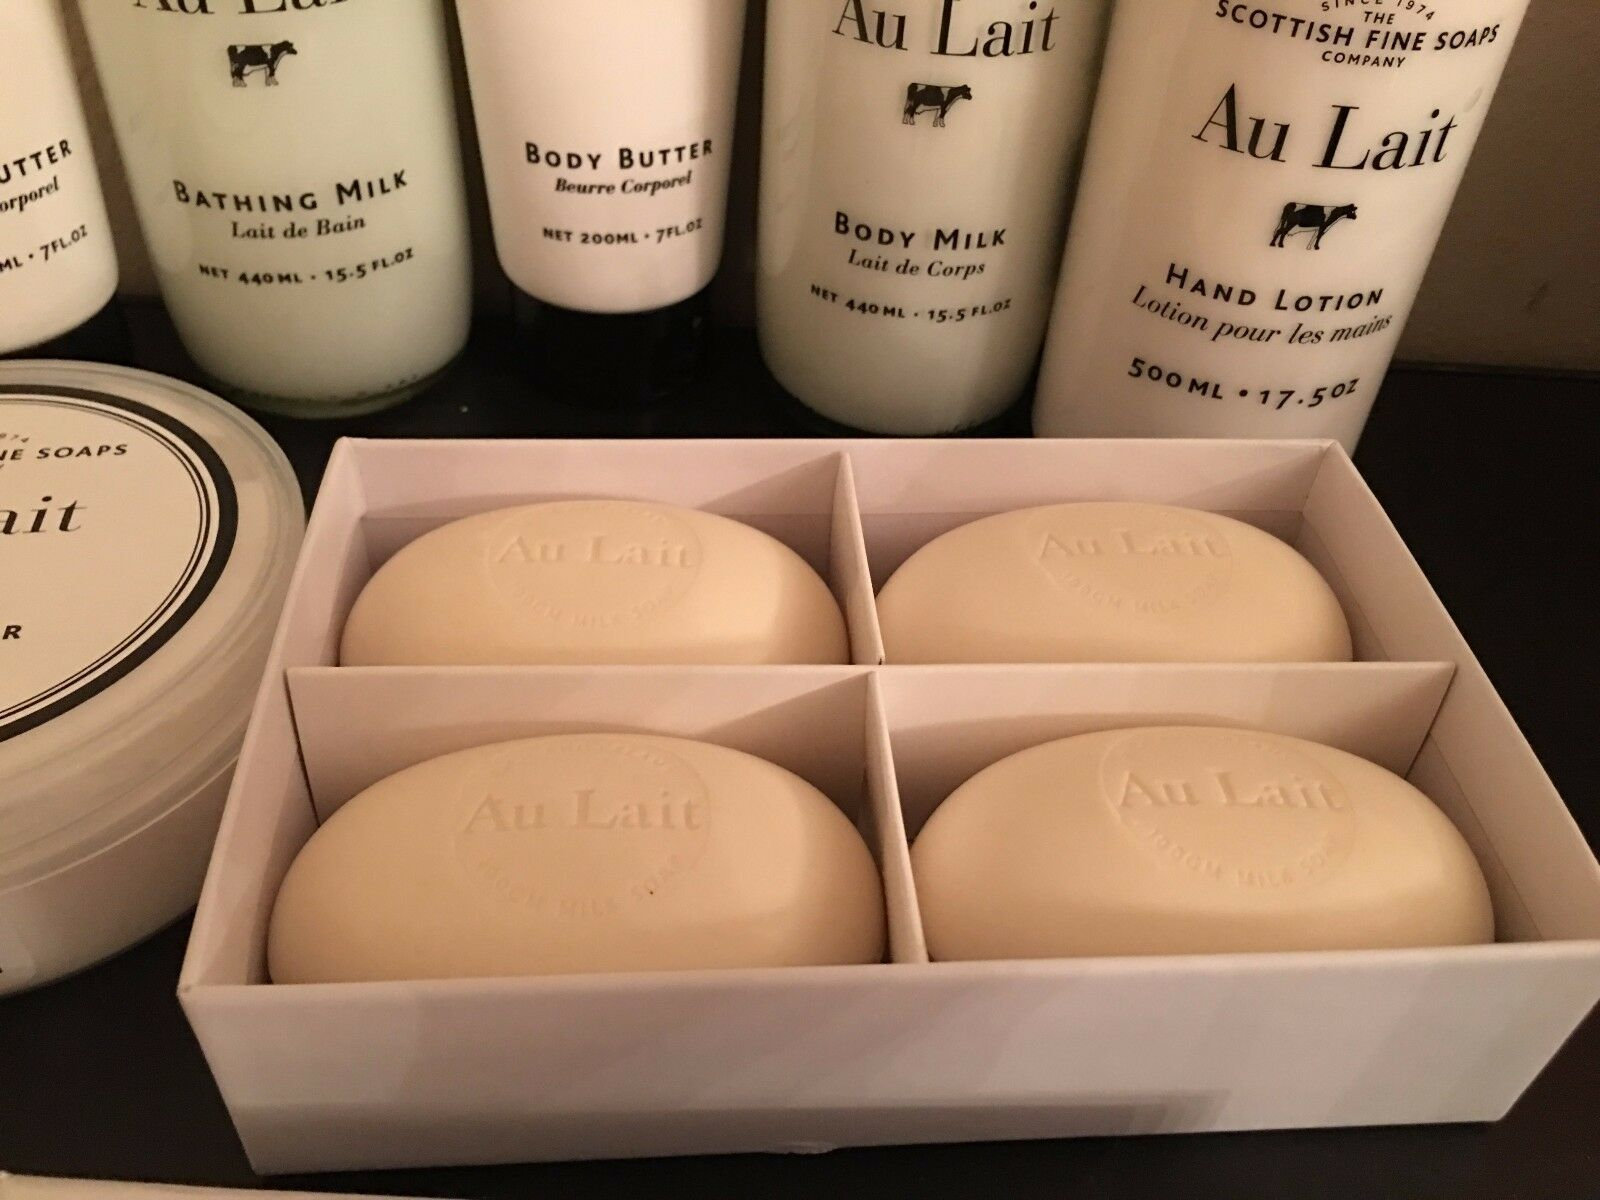 Primary image for Scottish Fine Soaps Au Lait body lotion/butter/Bathing Milk/hand lotion, new